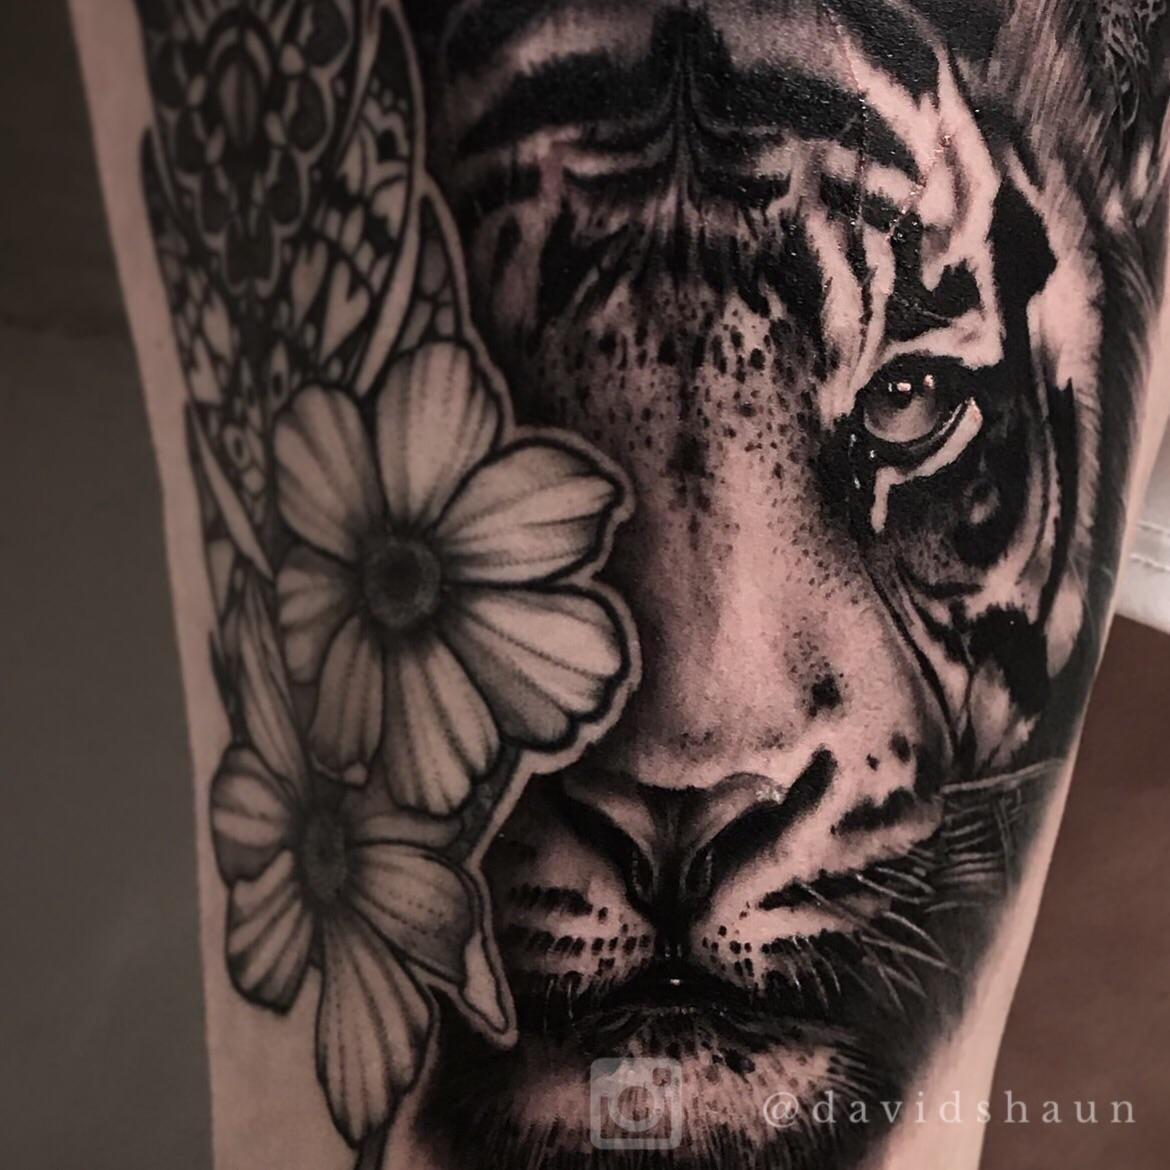 A large piece of stated on my clients leg thank you all for the